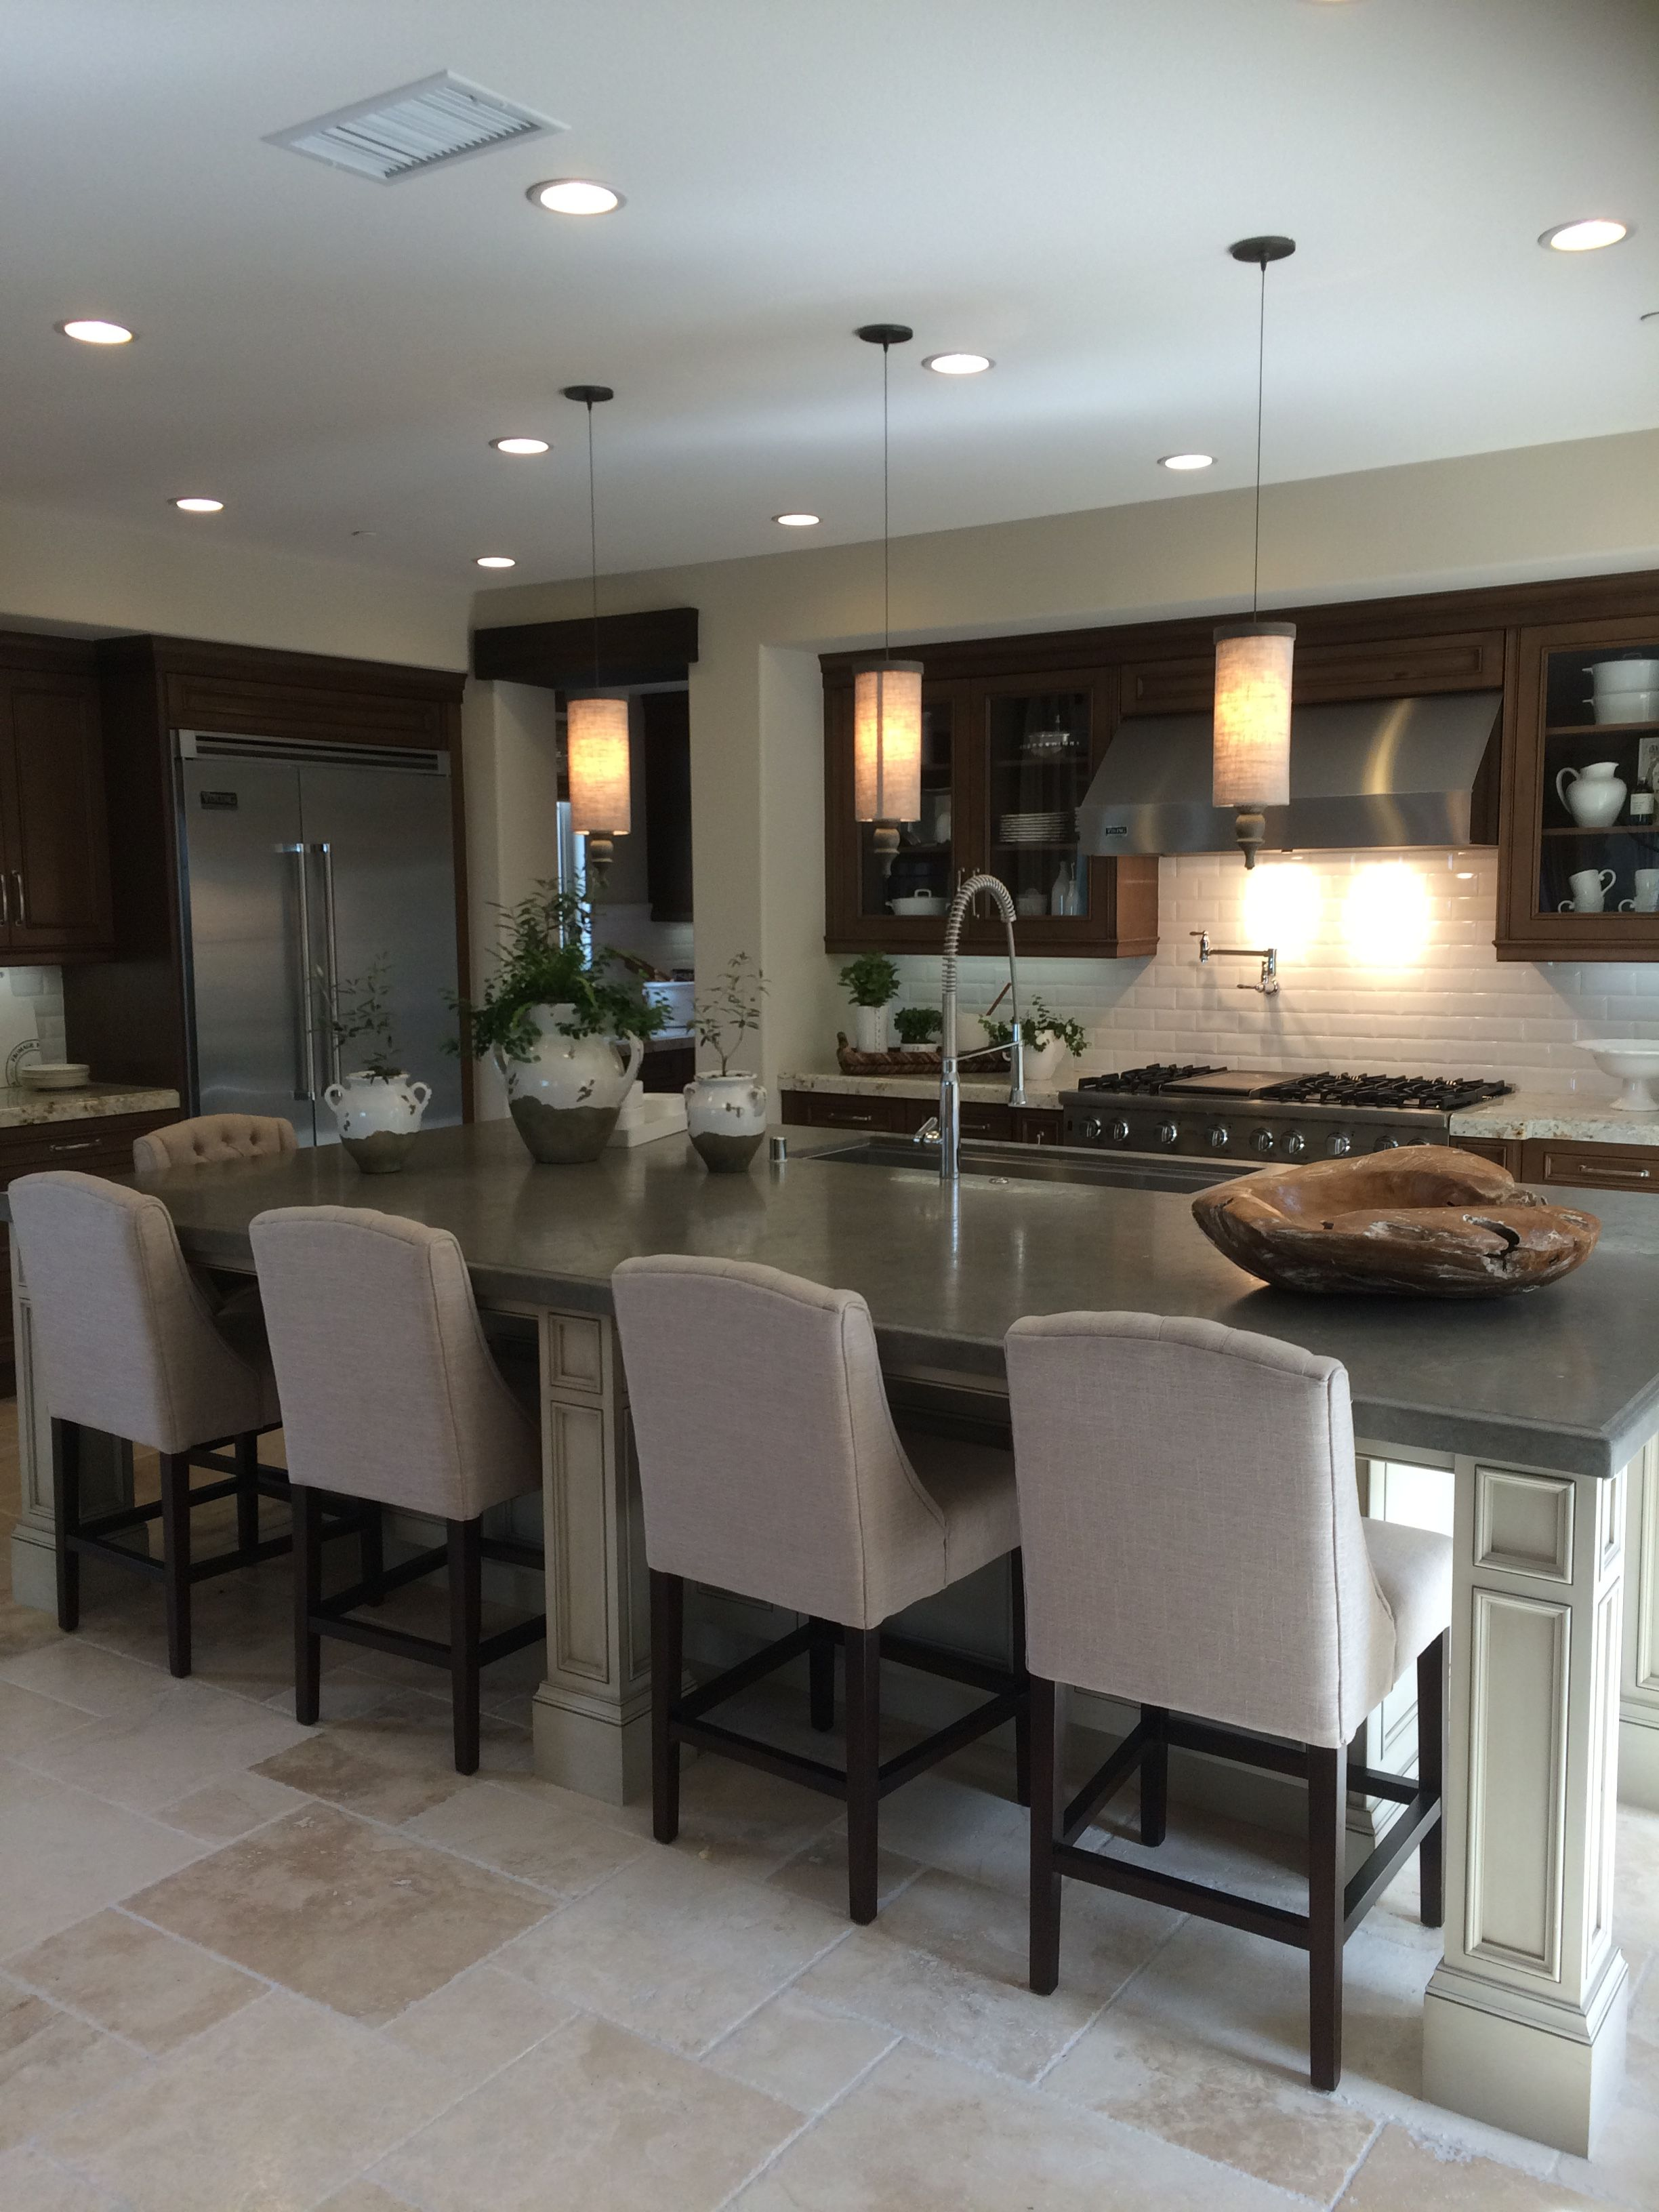 amazing kitchen with images kitchen remodel kitchen on awesome modern kitchen design ideas id=53723